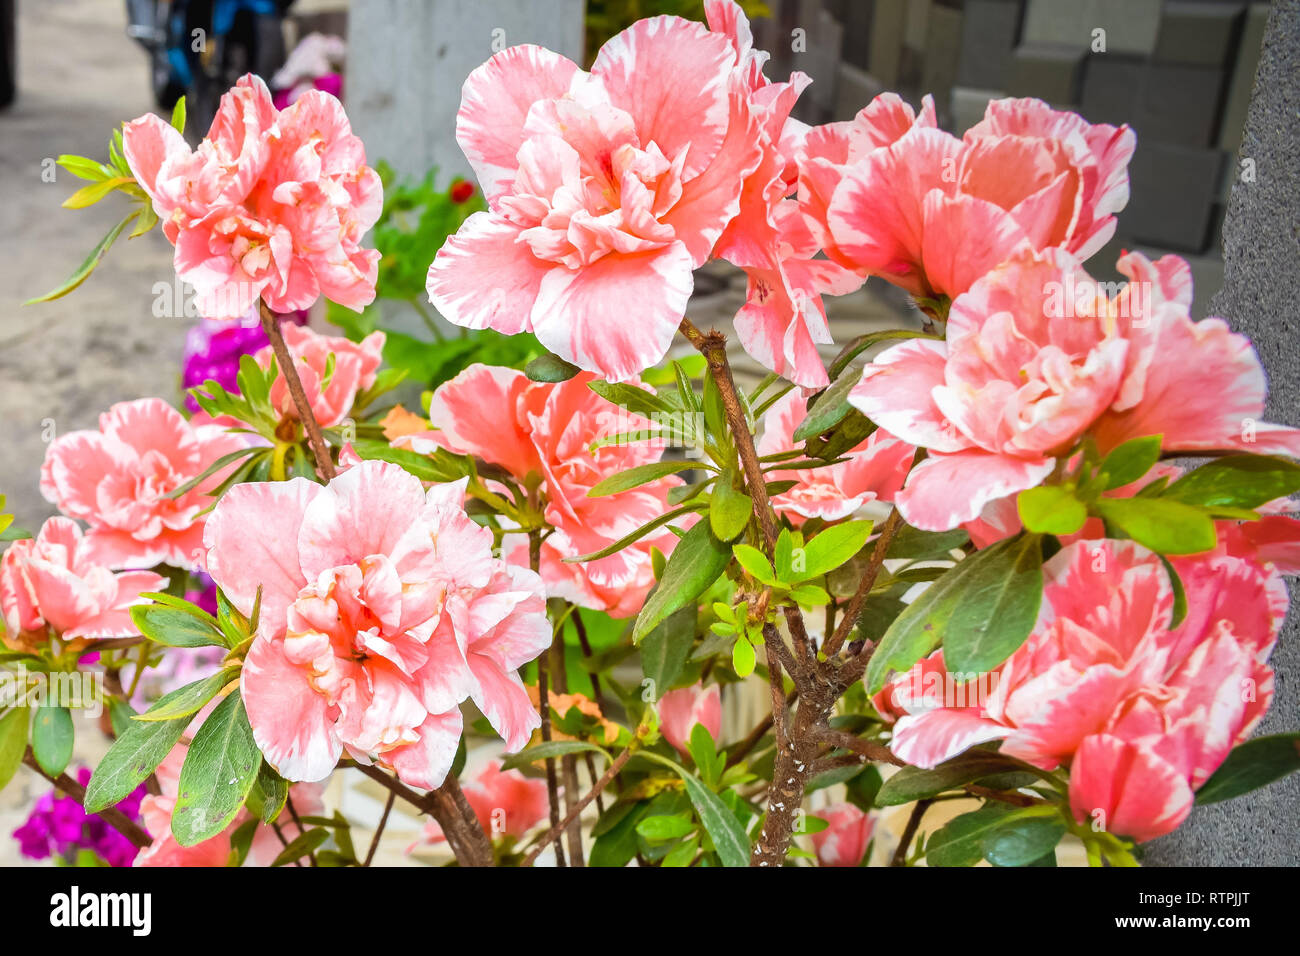 Carnation Or Clove Pink Or Dianthus Caryophyllus It Is An